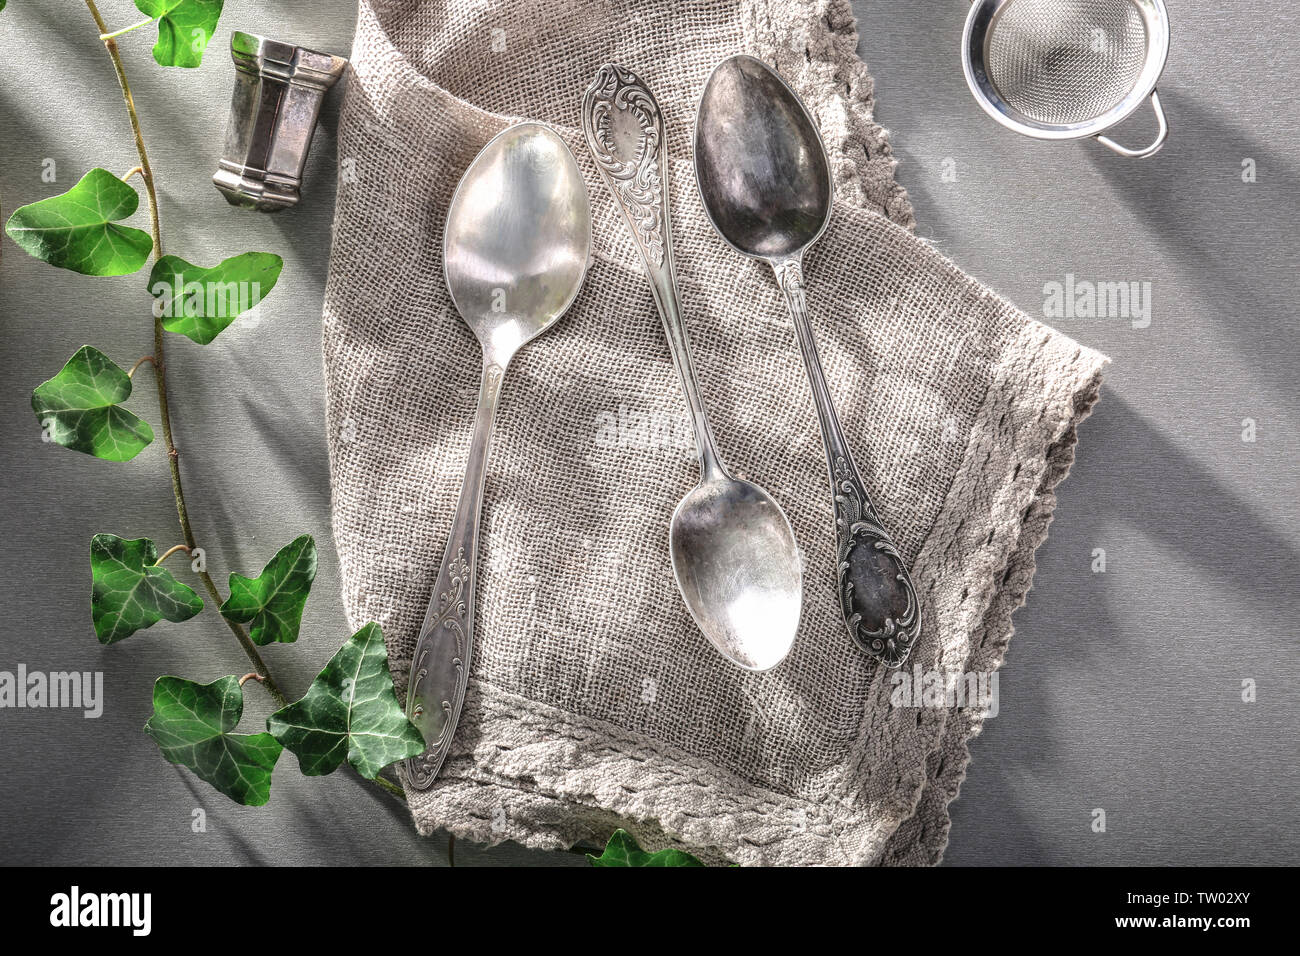 Sackcloth napkin with silverware and ivy on gray background - Stock Image